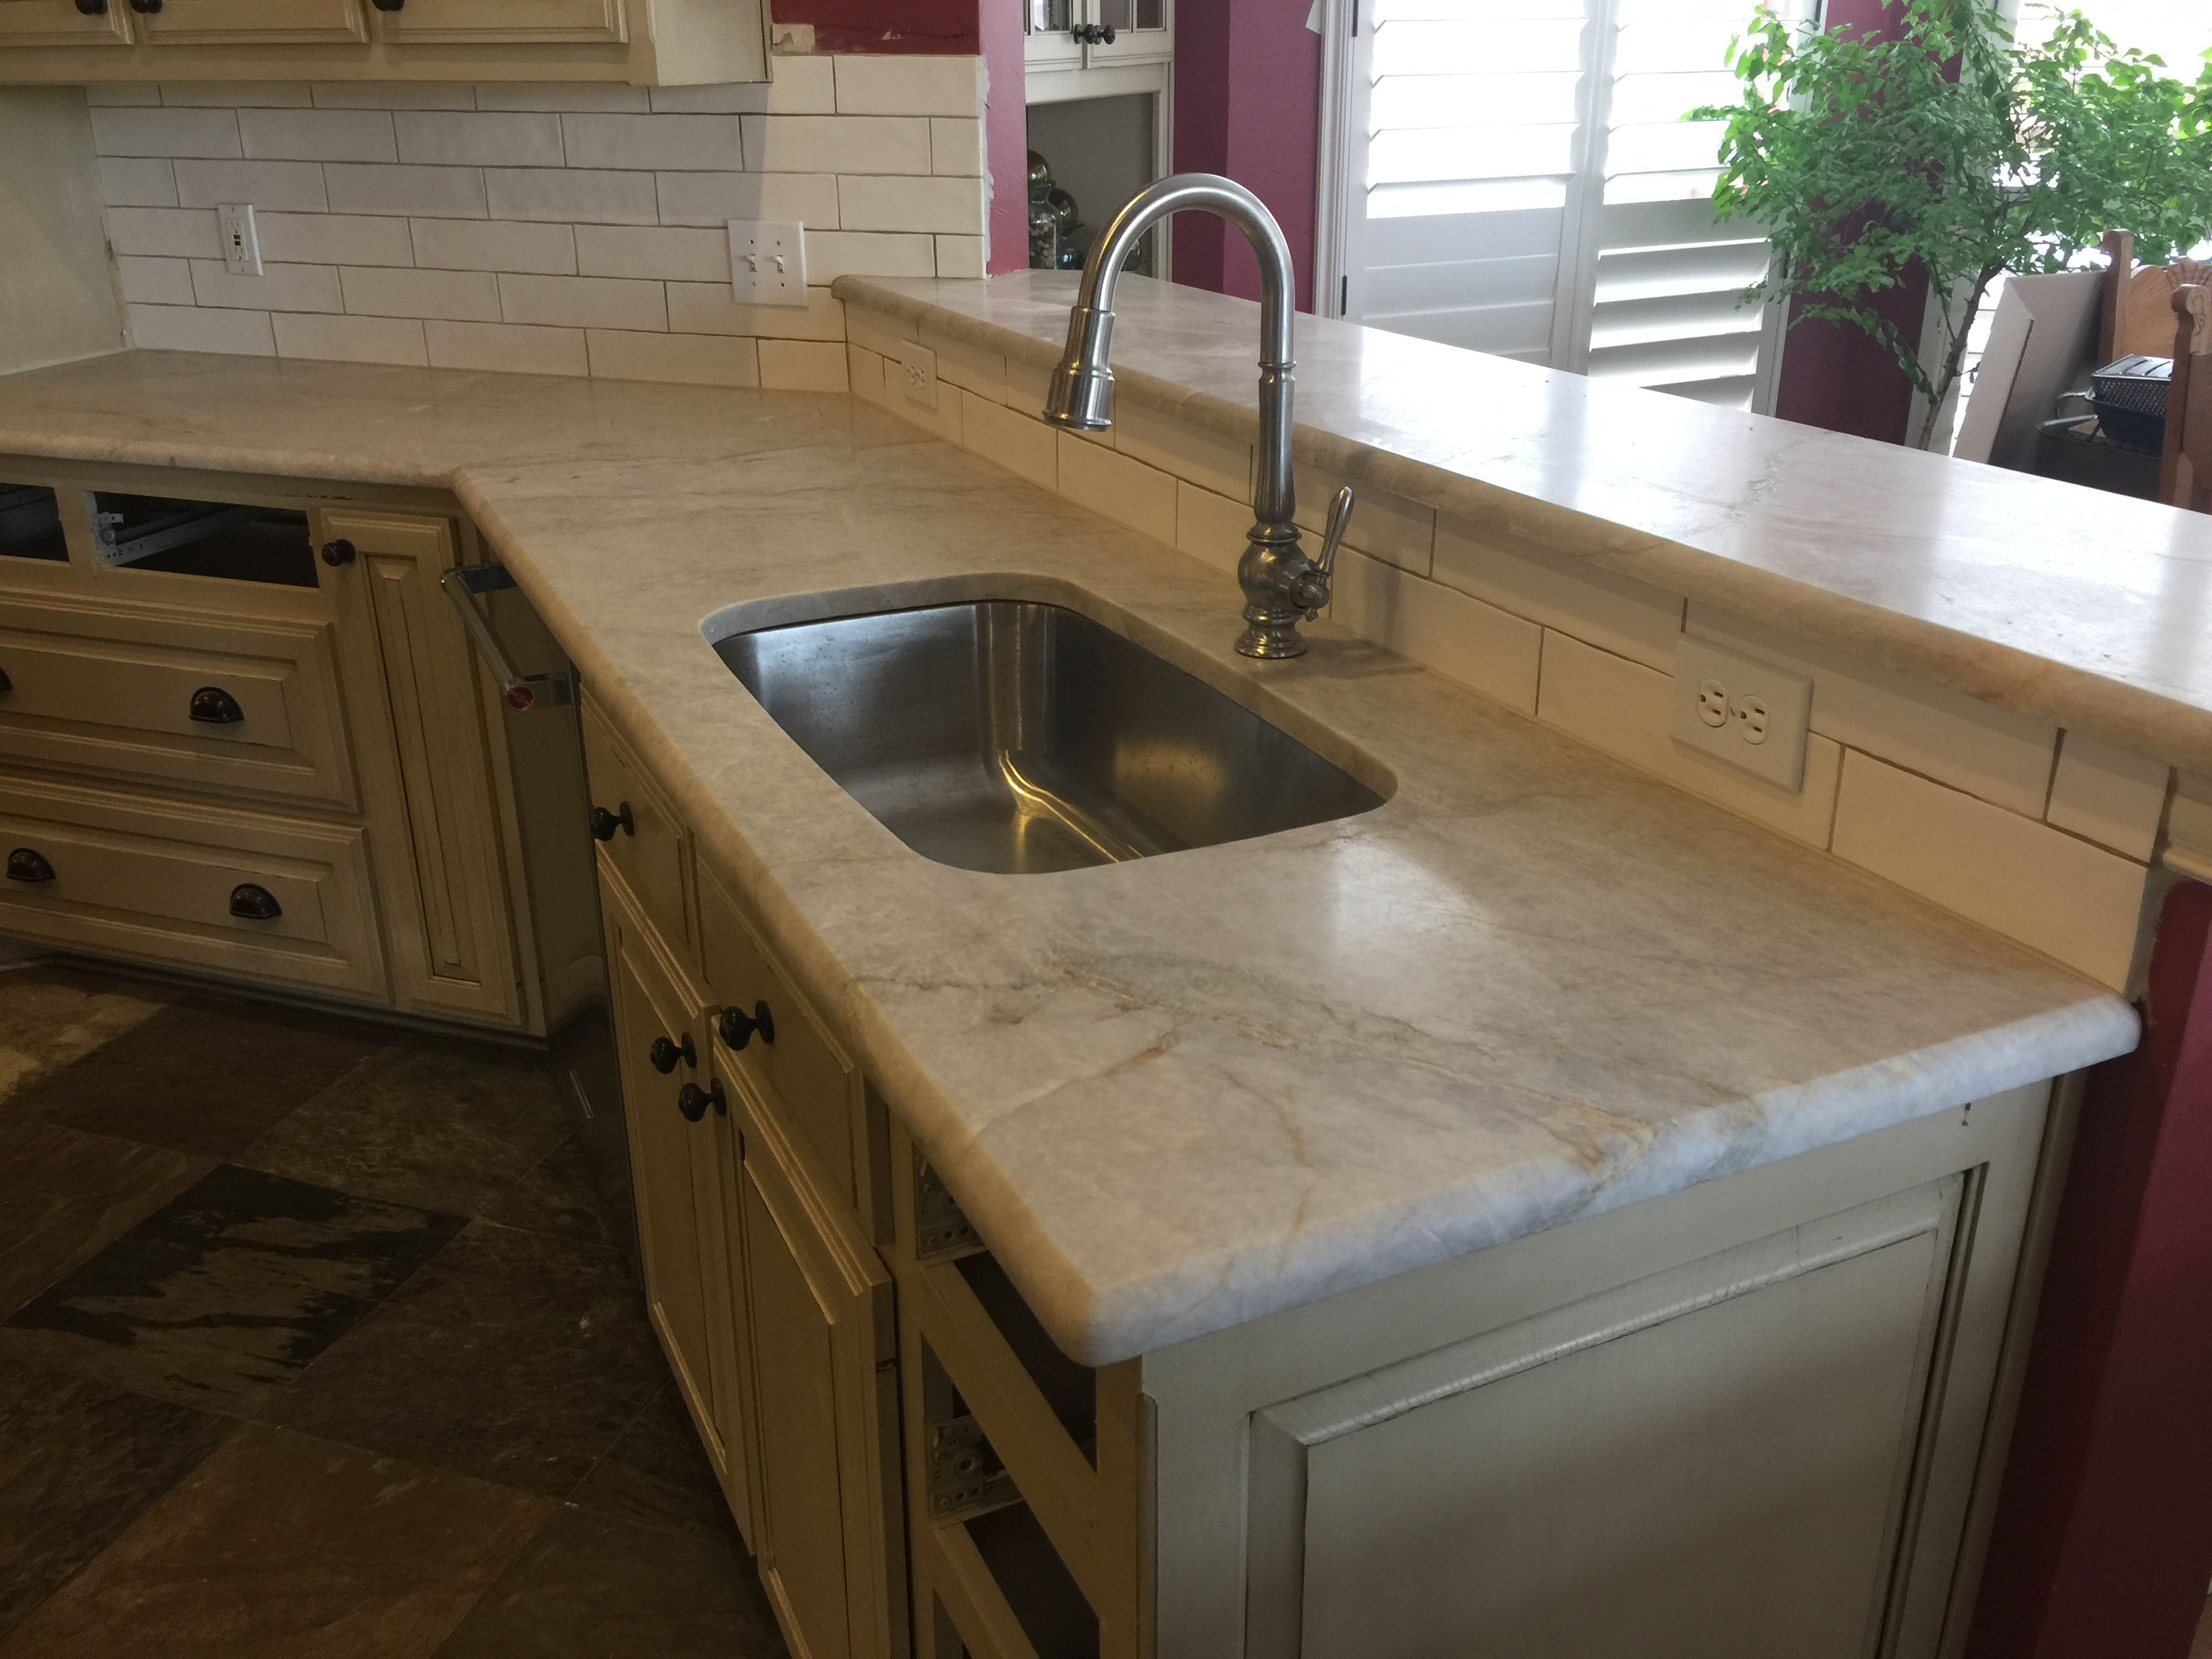 Good bye 1997 Baltic Brown Taj Mahal leathered quartzite countertops ...